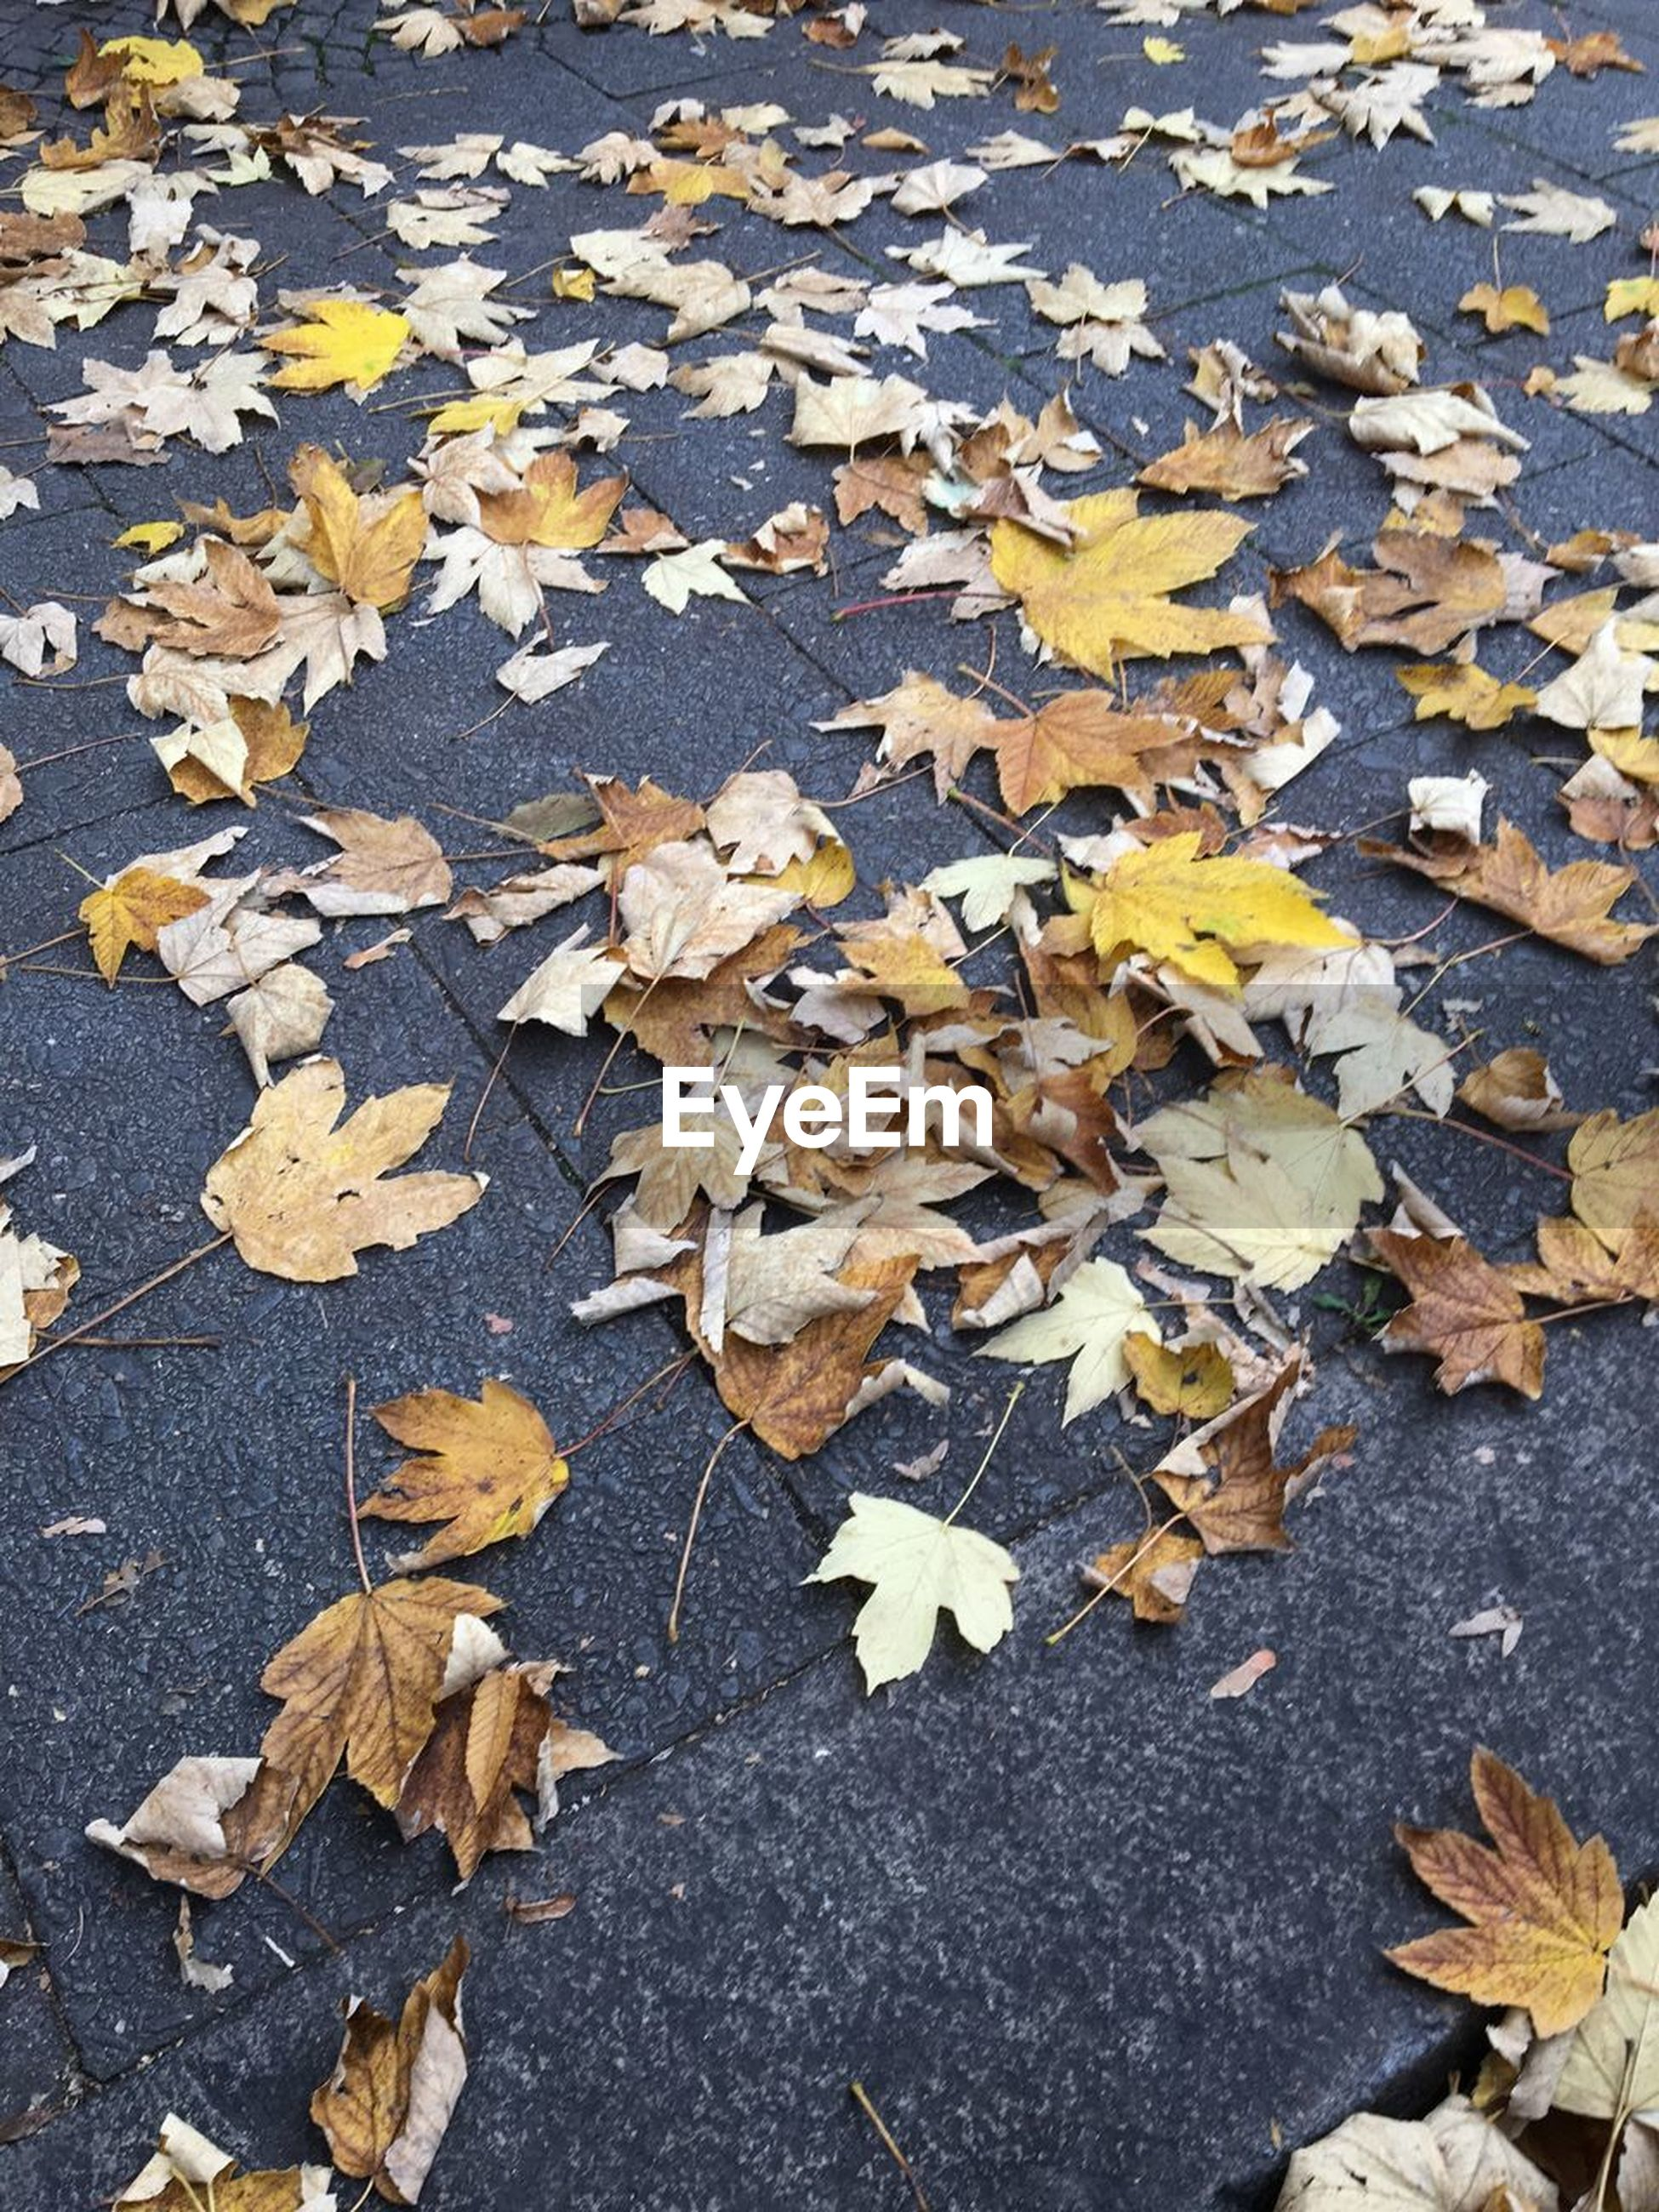 leaf, plant part, autumn, change, leaves, dry, falling, high angle view, maple leaf, nature, day, no people, close-up, outdoors, street, vulnerability, beauty in nature, yellow, natural condition, fragility, messy, fall, autumn collection